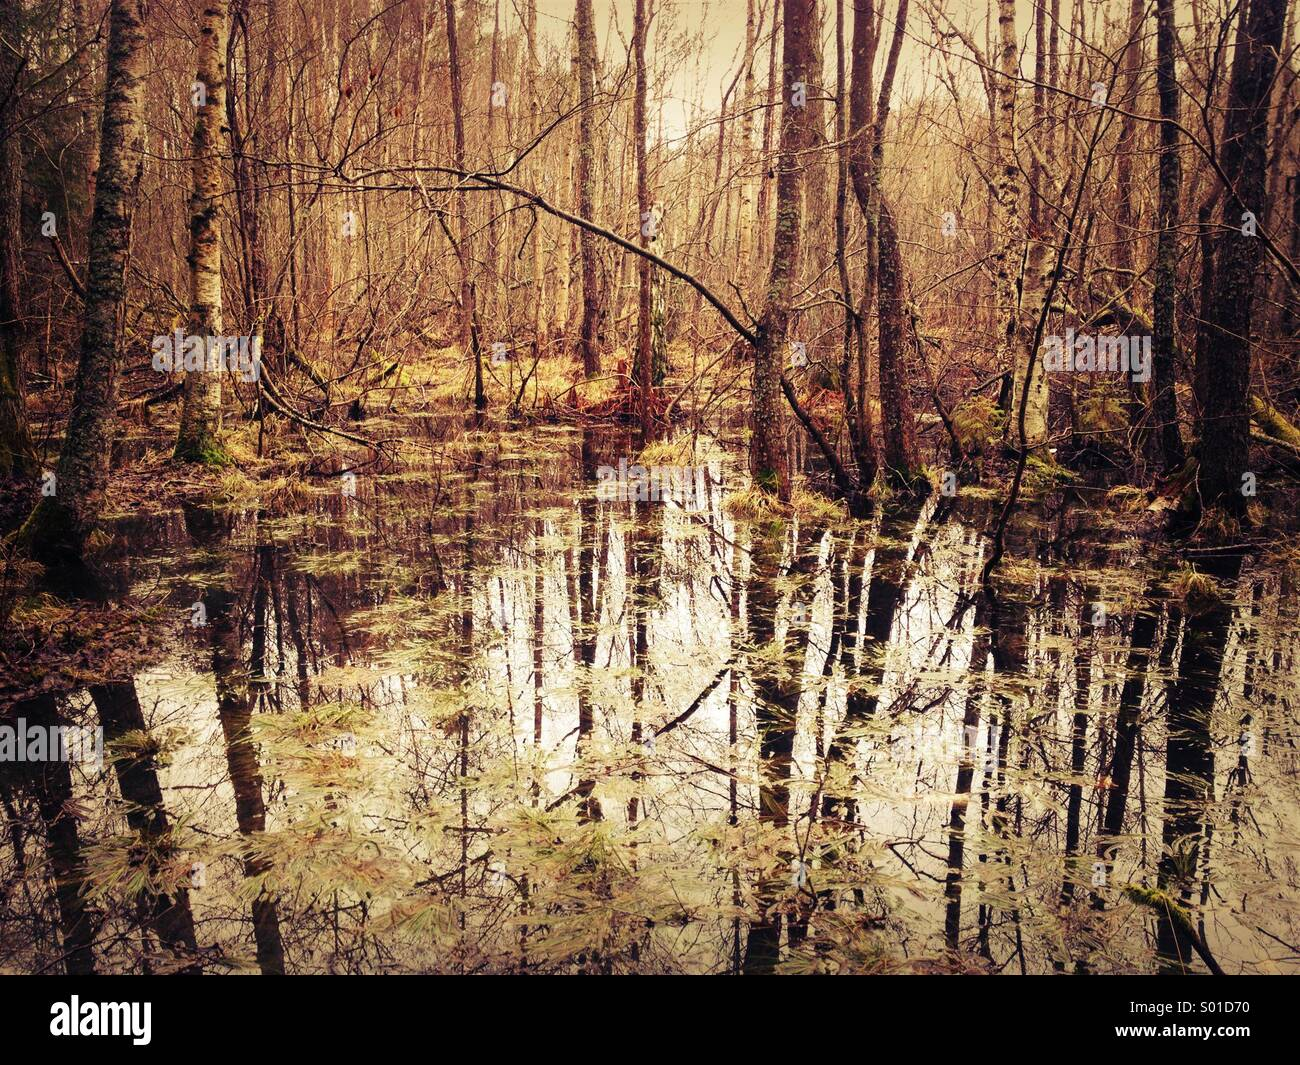 Water logged flooded swamp land in Swedish Forest. - Stock Image